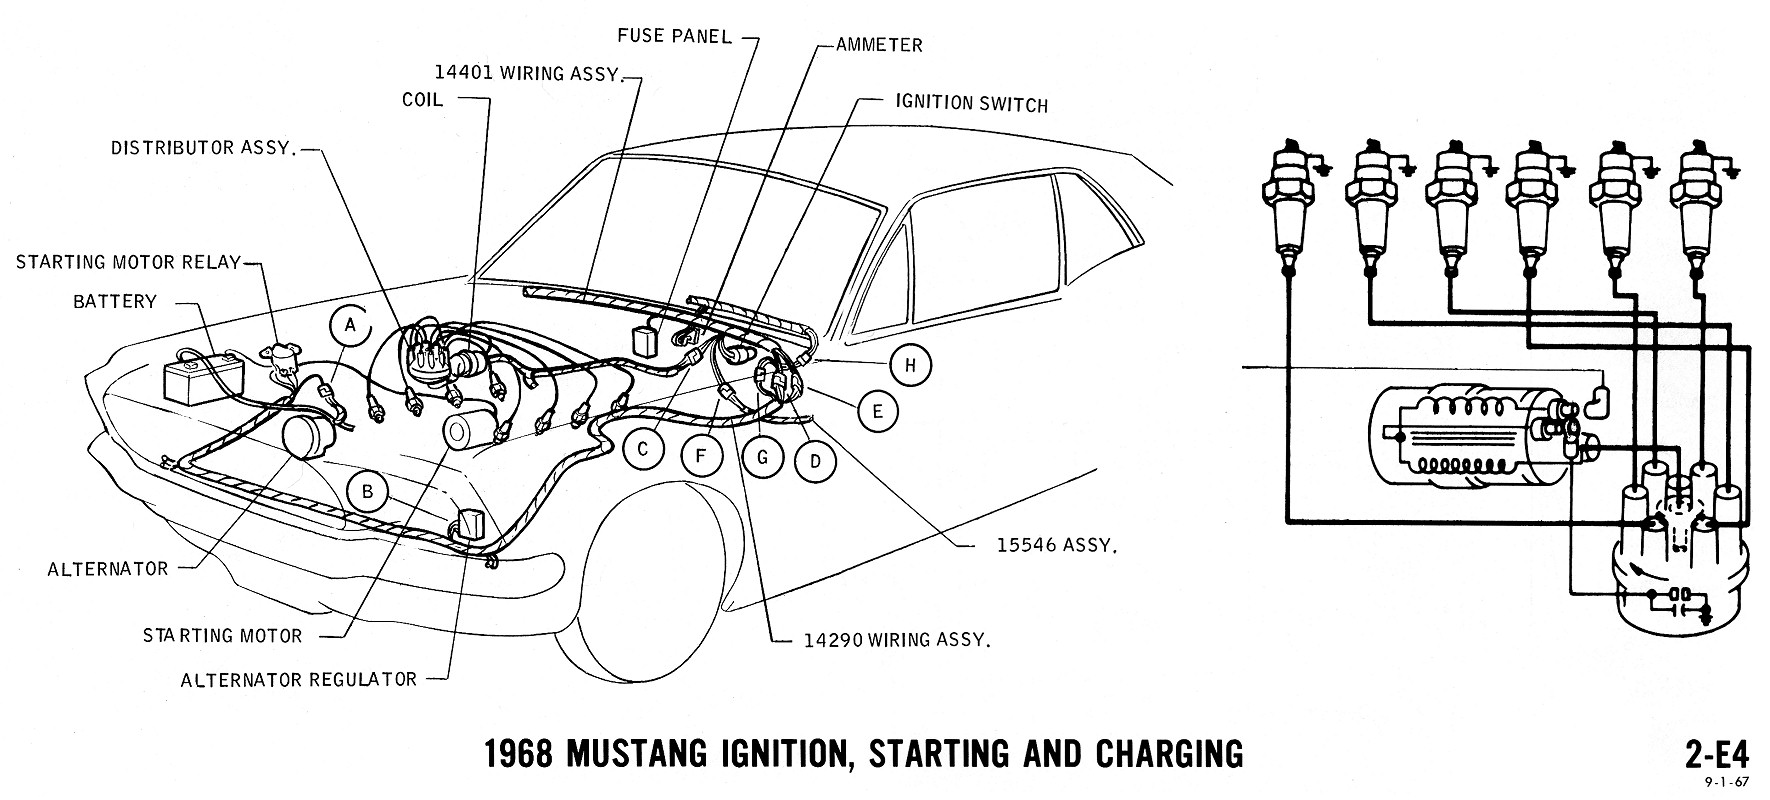 1968 mustang wiring diagram ignition starting charging 2 mustang ignition coil wiring simple wiring diagram